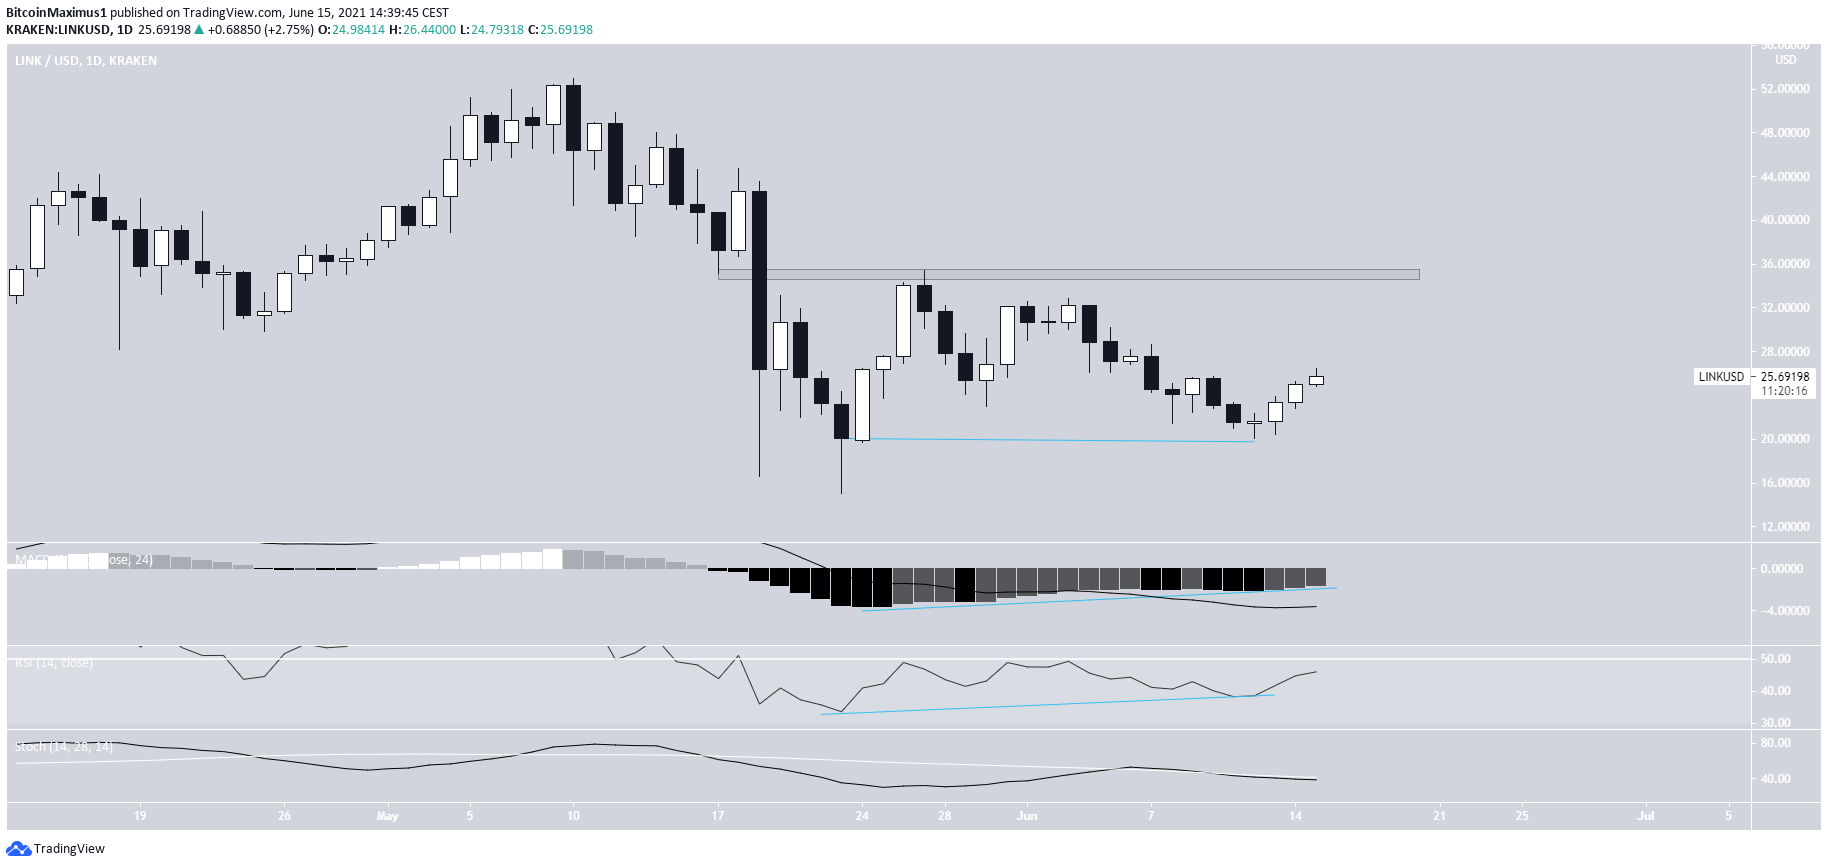 LINK Daily movement